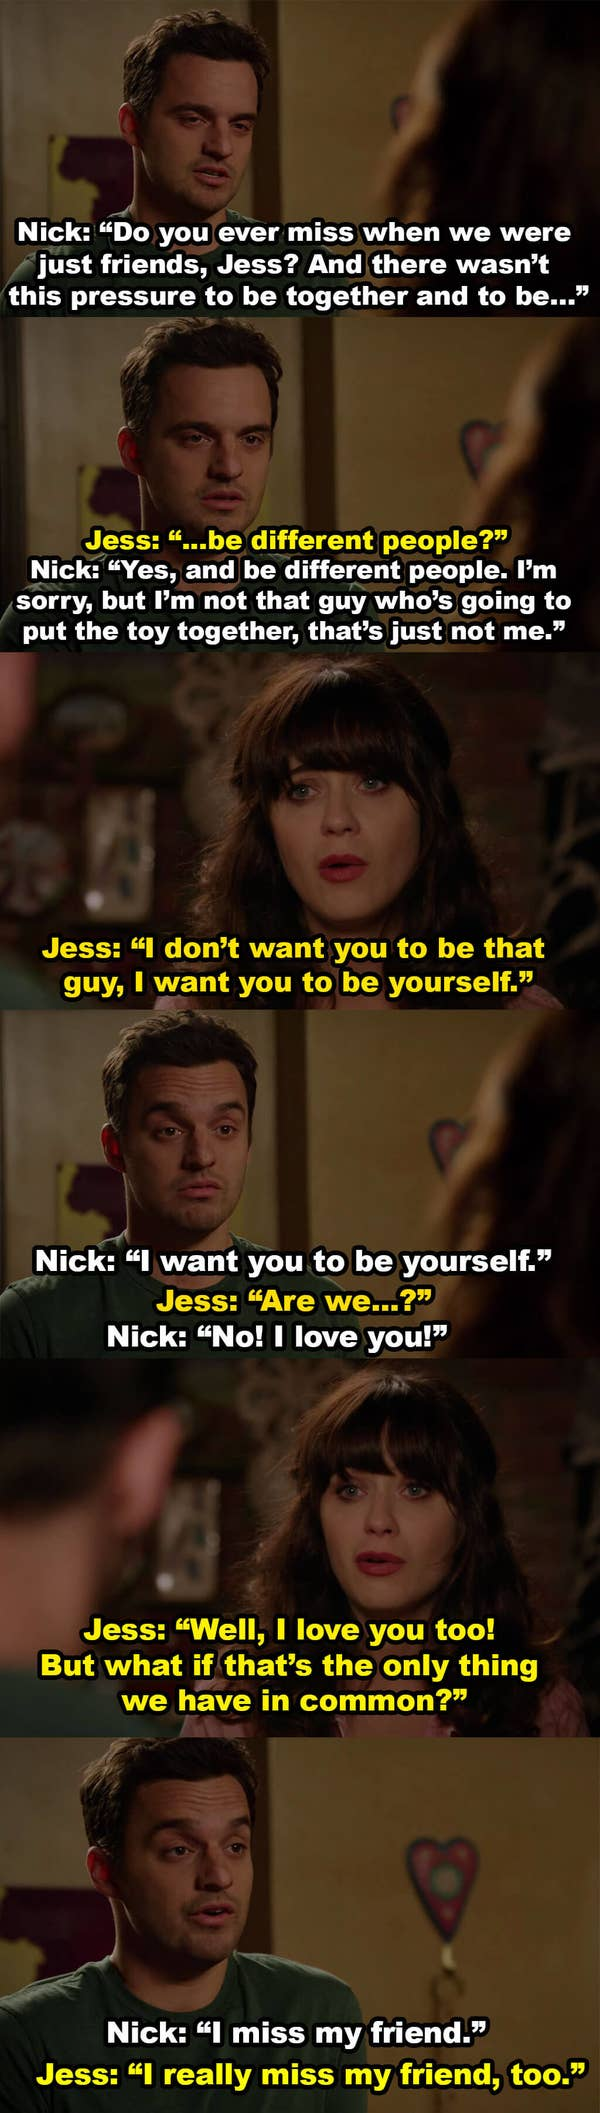 Nick and Jess say they miss when they were just friends and didn't have to change for each other, and Jess says maybe them loving each other is all they have in common